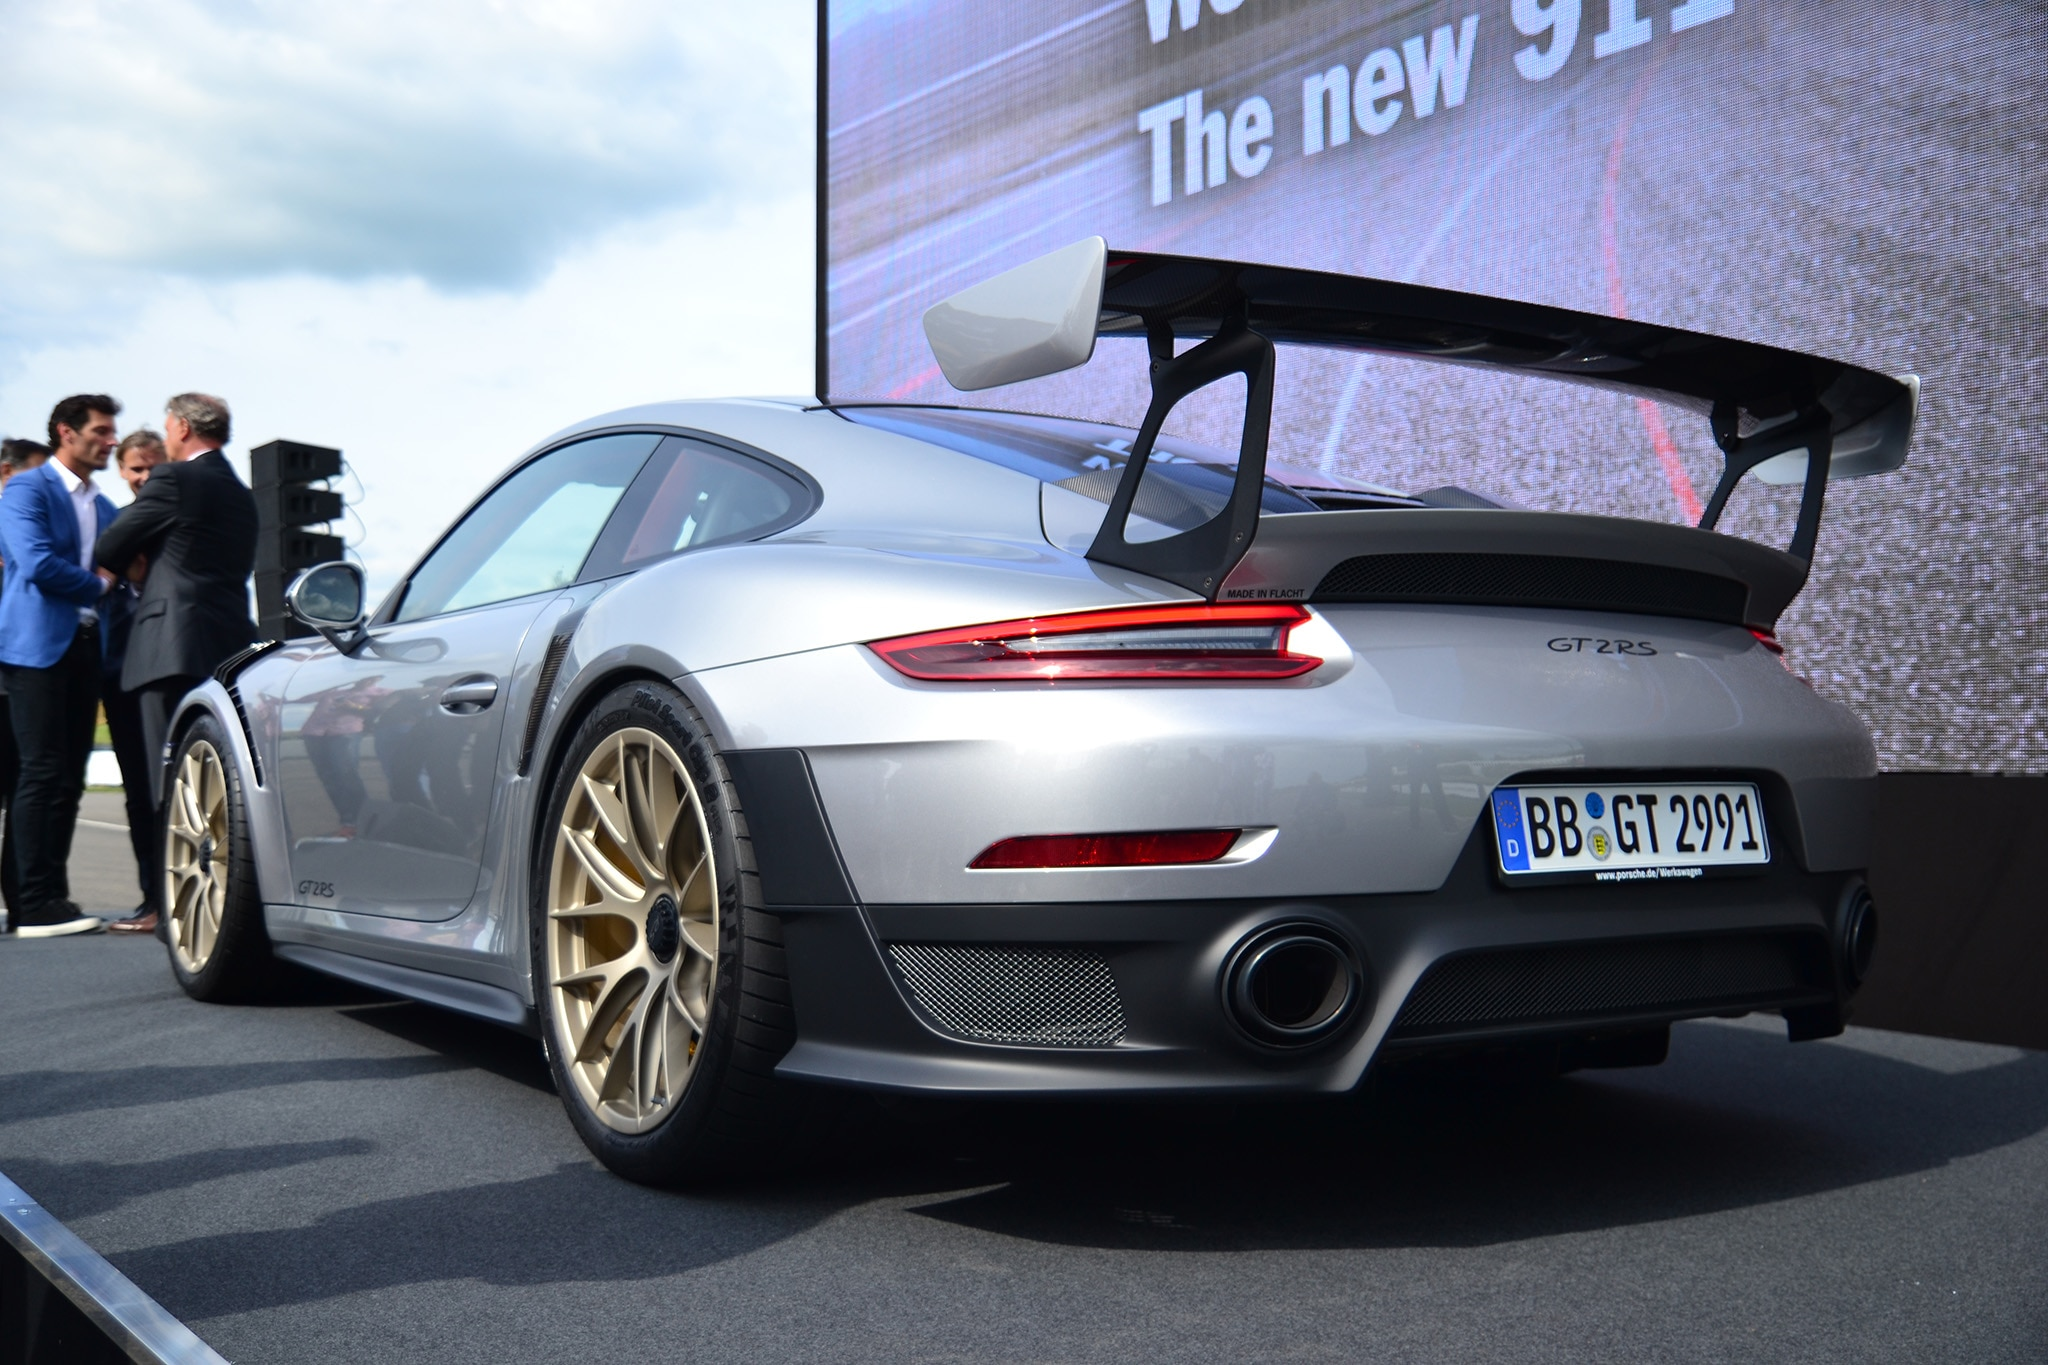 porsche gt2 rs 2018 with 2018 Porsche 911 Gt2 Rs Revealed Goodwood on 2019 Porsche 911 Spied furthermore 2 in addition Triumph Motorcycles To Launch In India together with Geneva Porsche 918 Spyder With Hybrid Drive furthermore 2019 Porsche 911 Gt3 Rs 4 2 Latest Spy Shots.